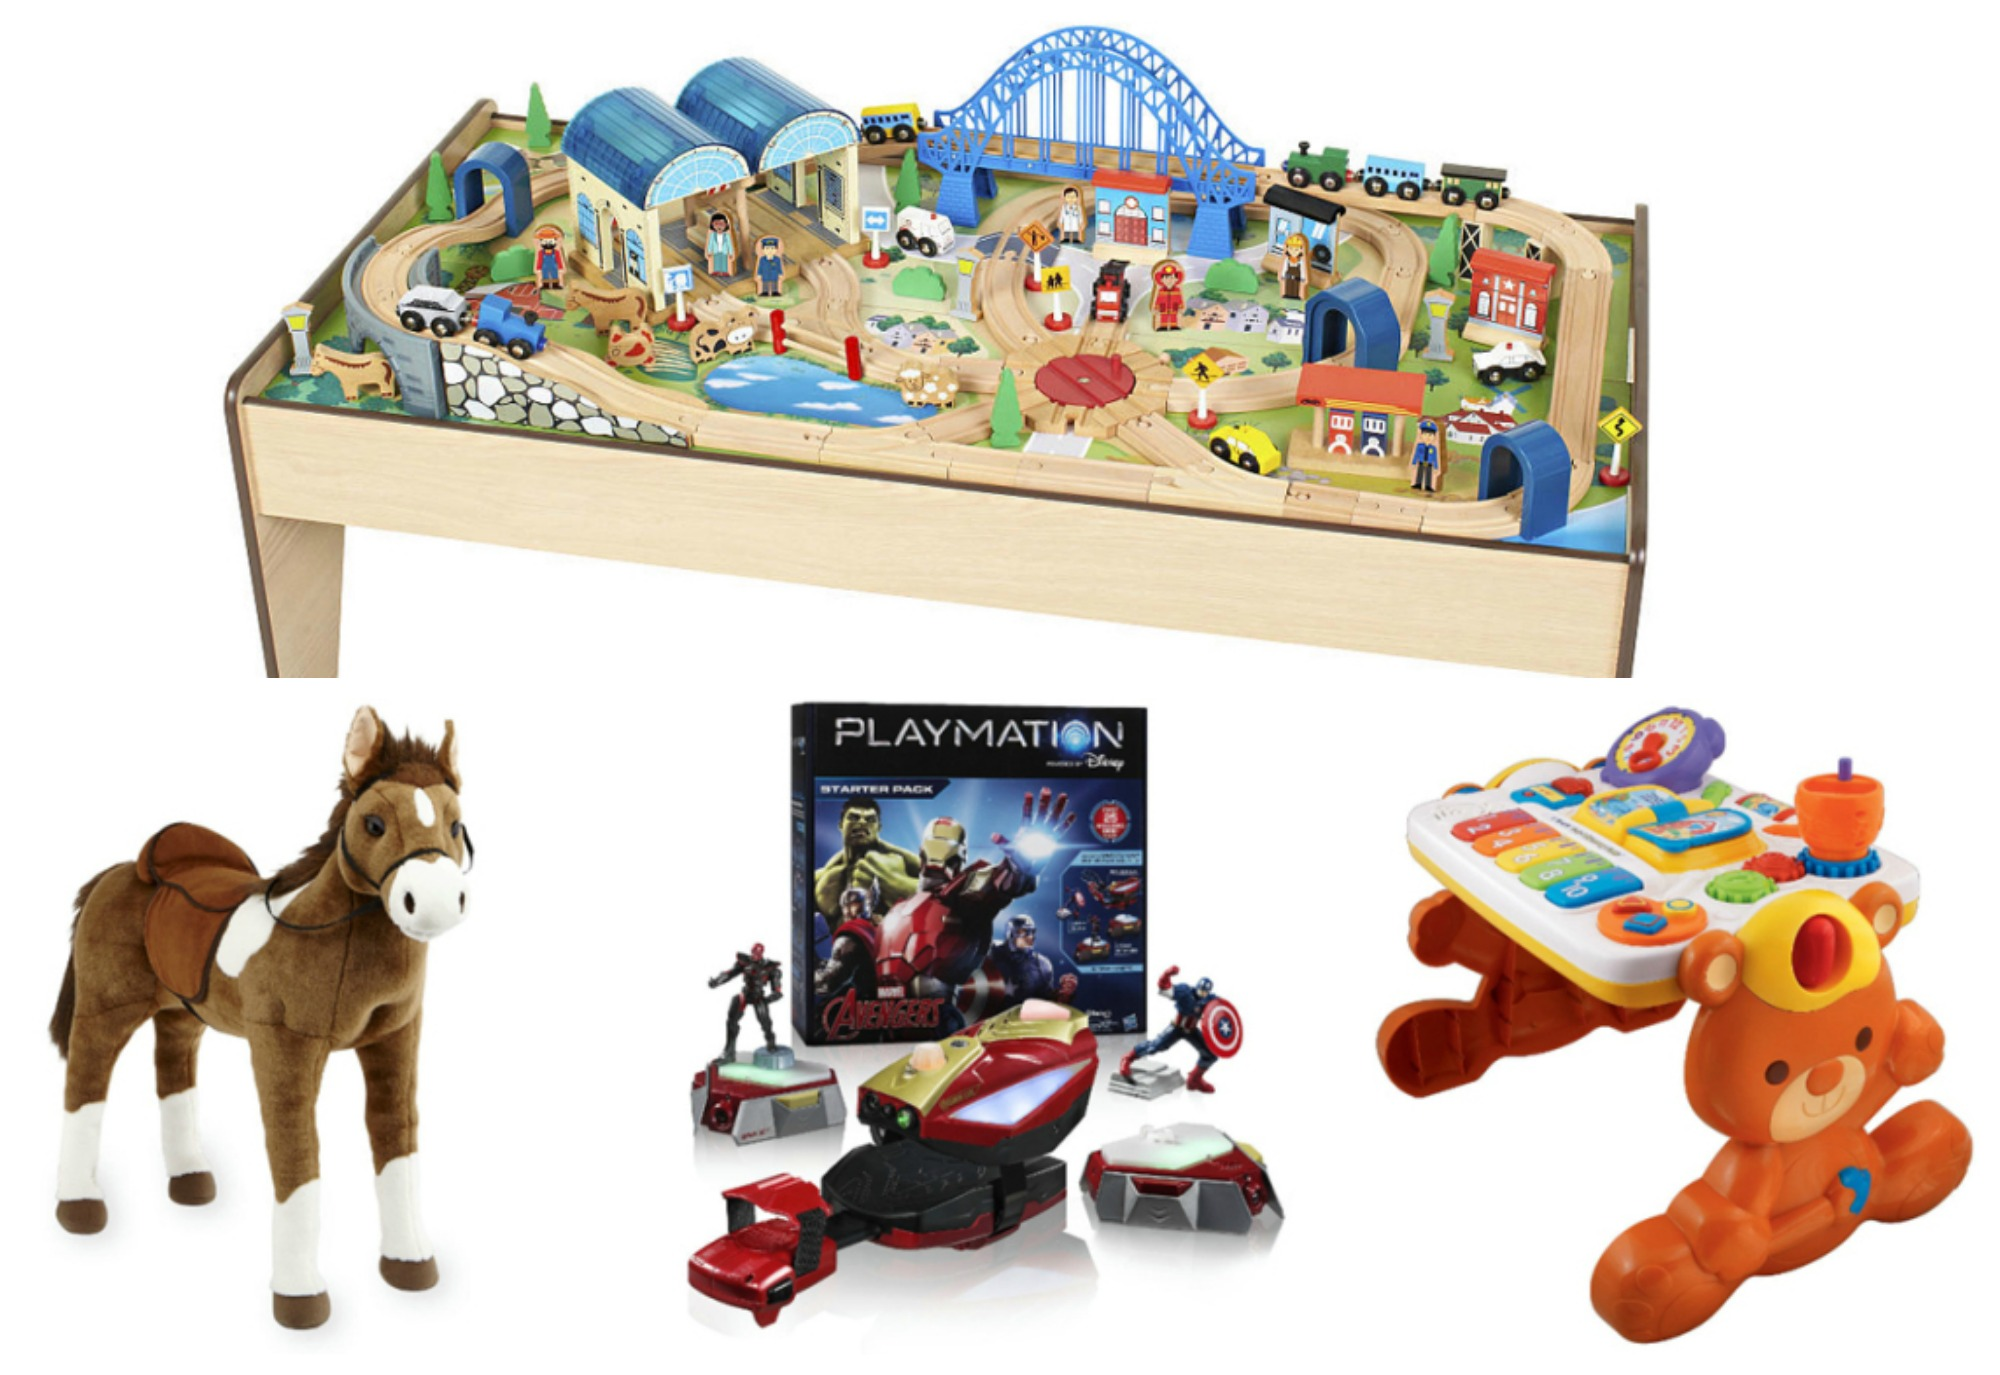 Imaginarium All-in-One Wooden Train Table Only $51.99 Shipped (Reg. $65) \u0026 More at ToysRUs  sc 1 st  Raining Hot Coupons & Imaginarium All-in-One Wooden Train Table Only $51.99 Shipped (Reg ...